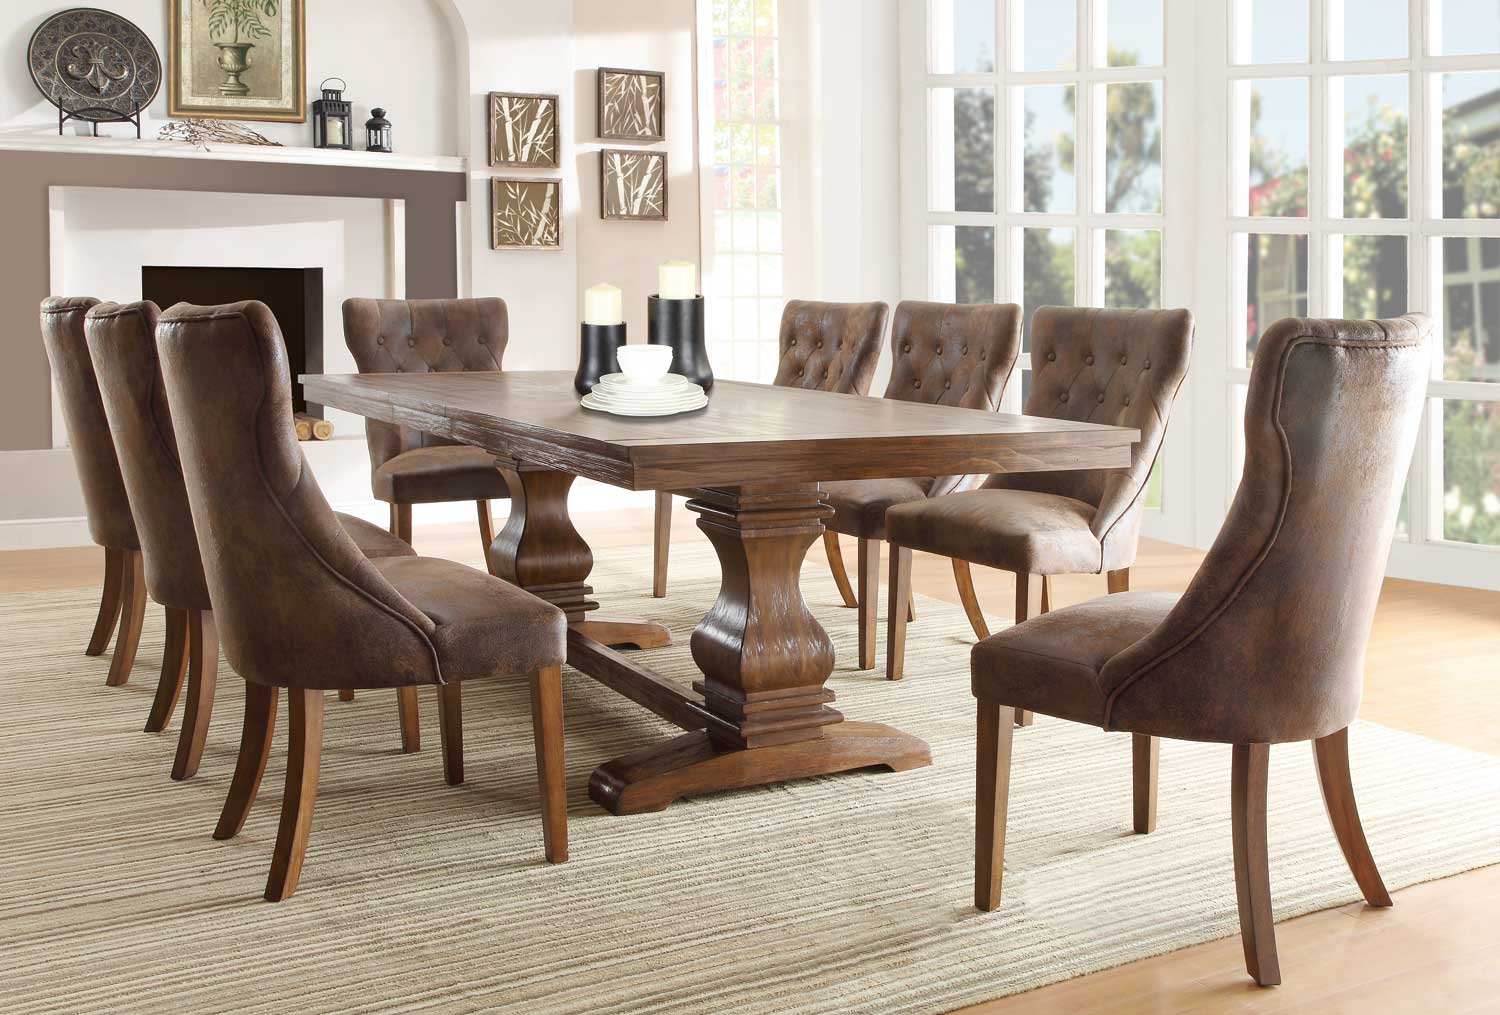 Merveilleux Homelegance Marie Louise Dining Set   Rustic Oak Brown